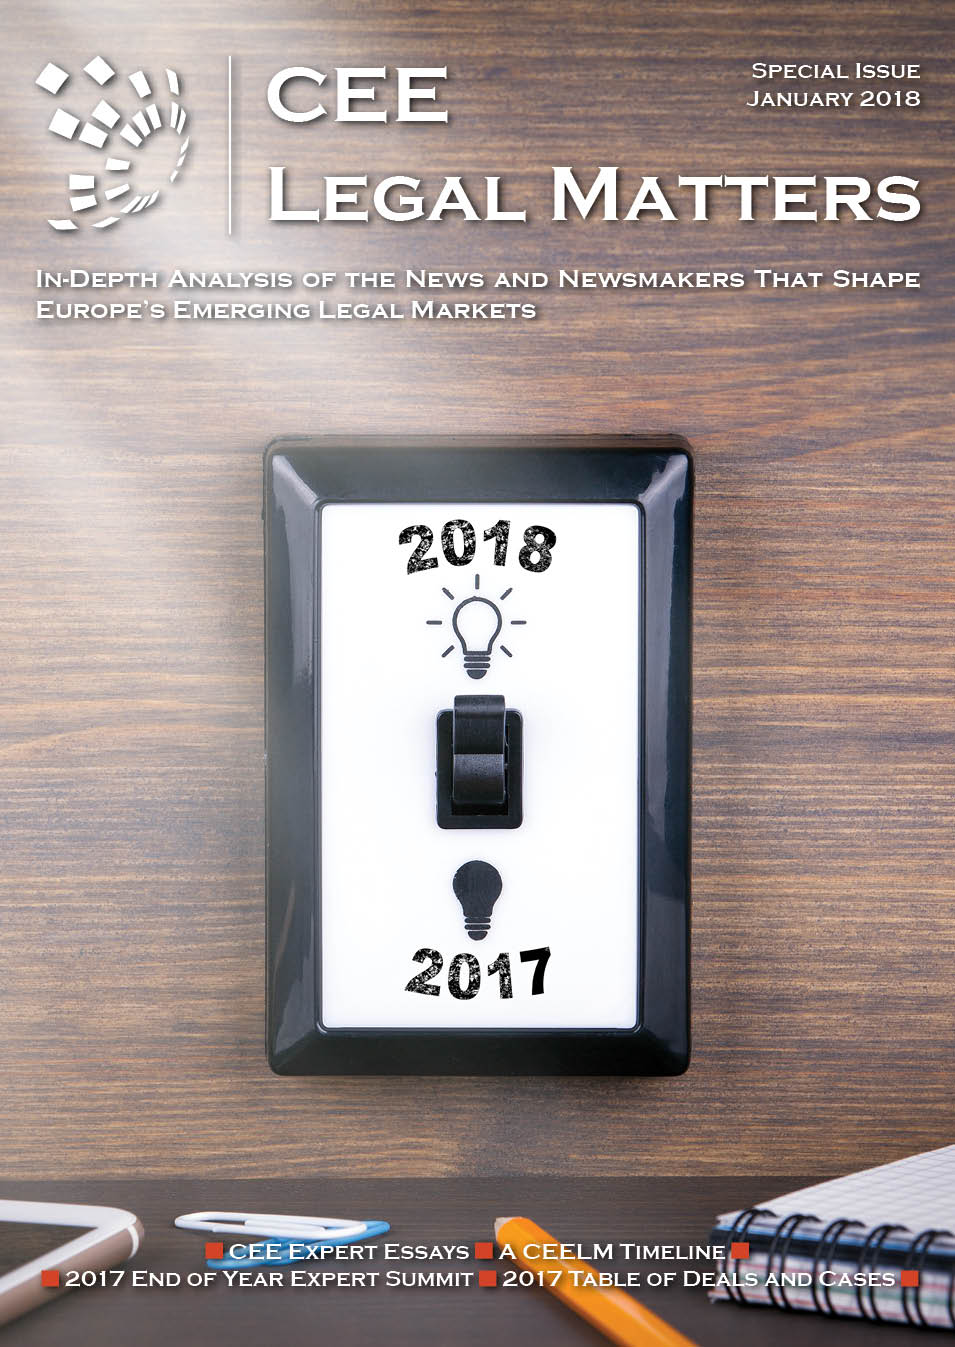 CEE Legal Matters: Special Year End Issue (Issue 5.1)